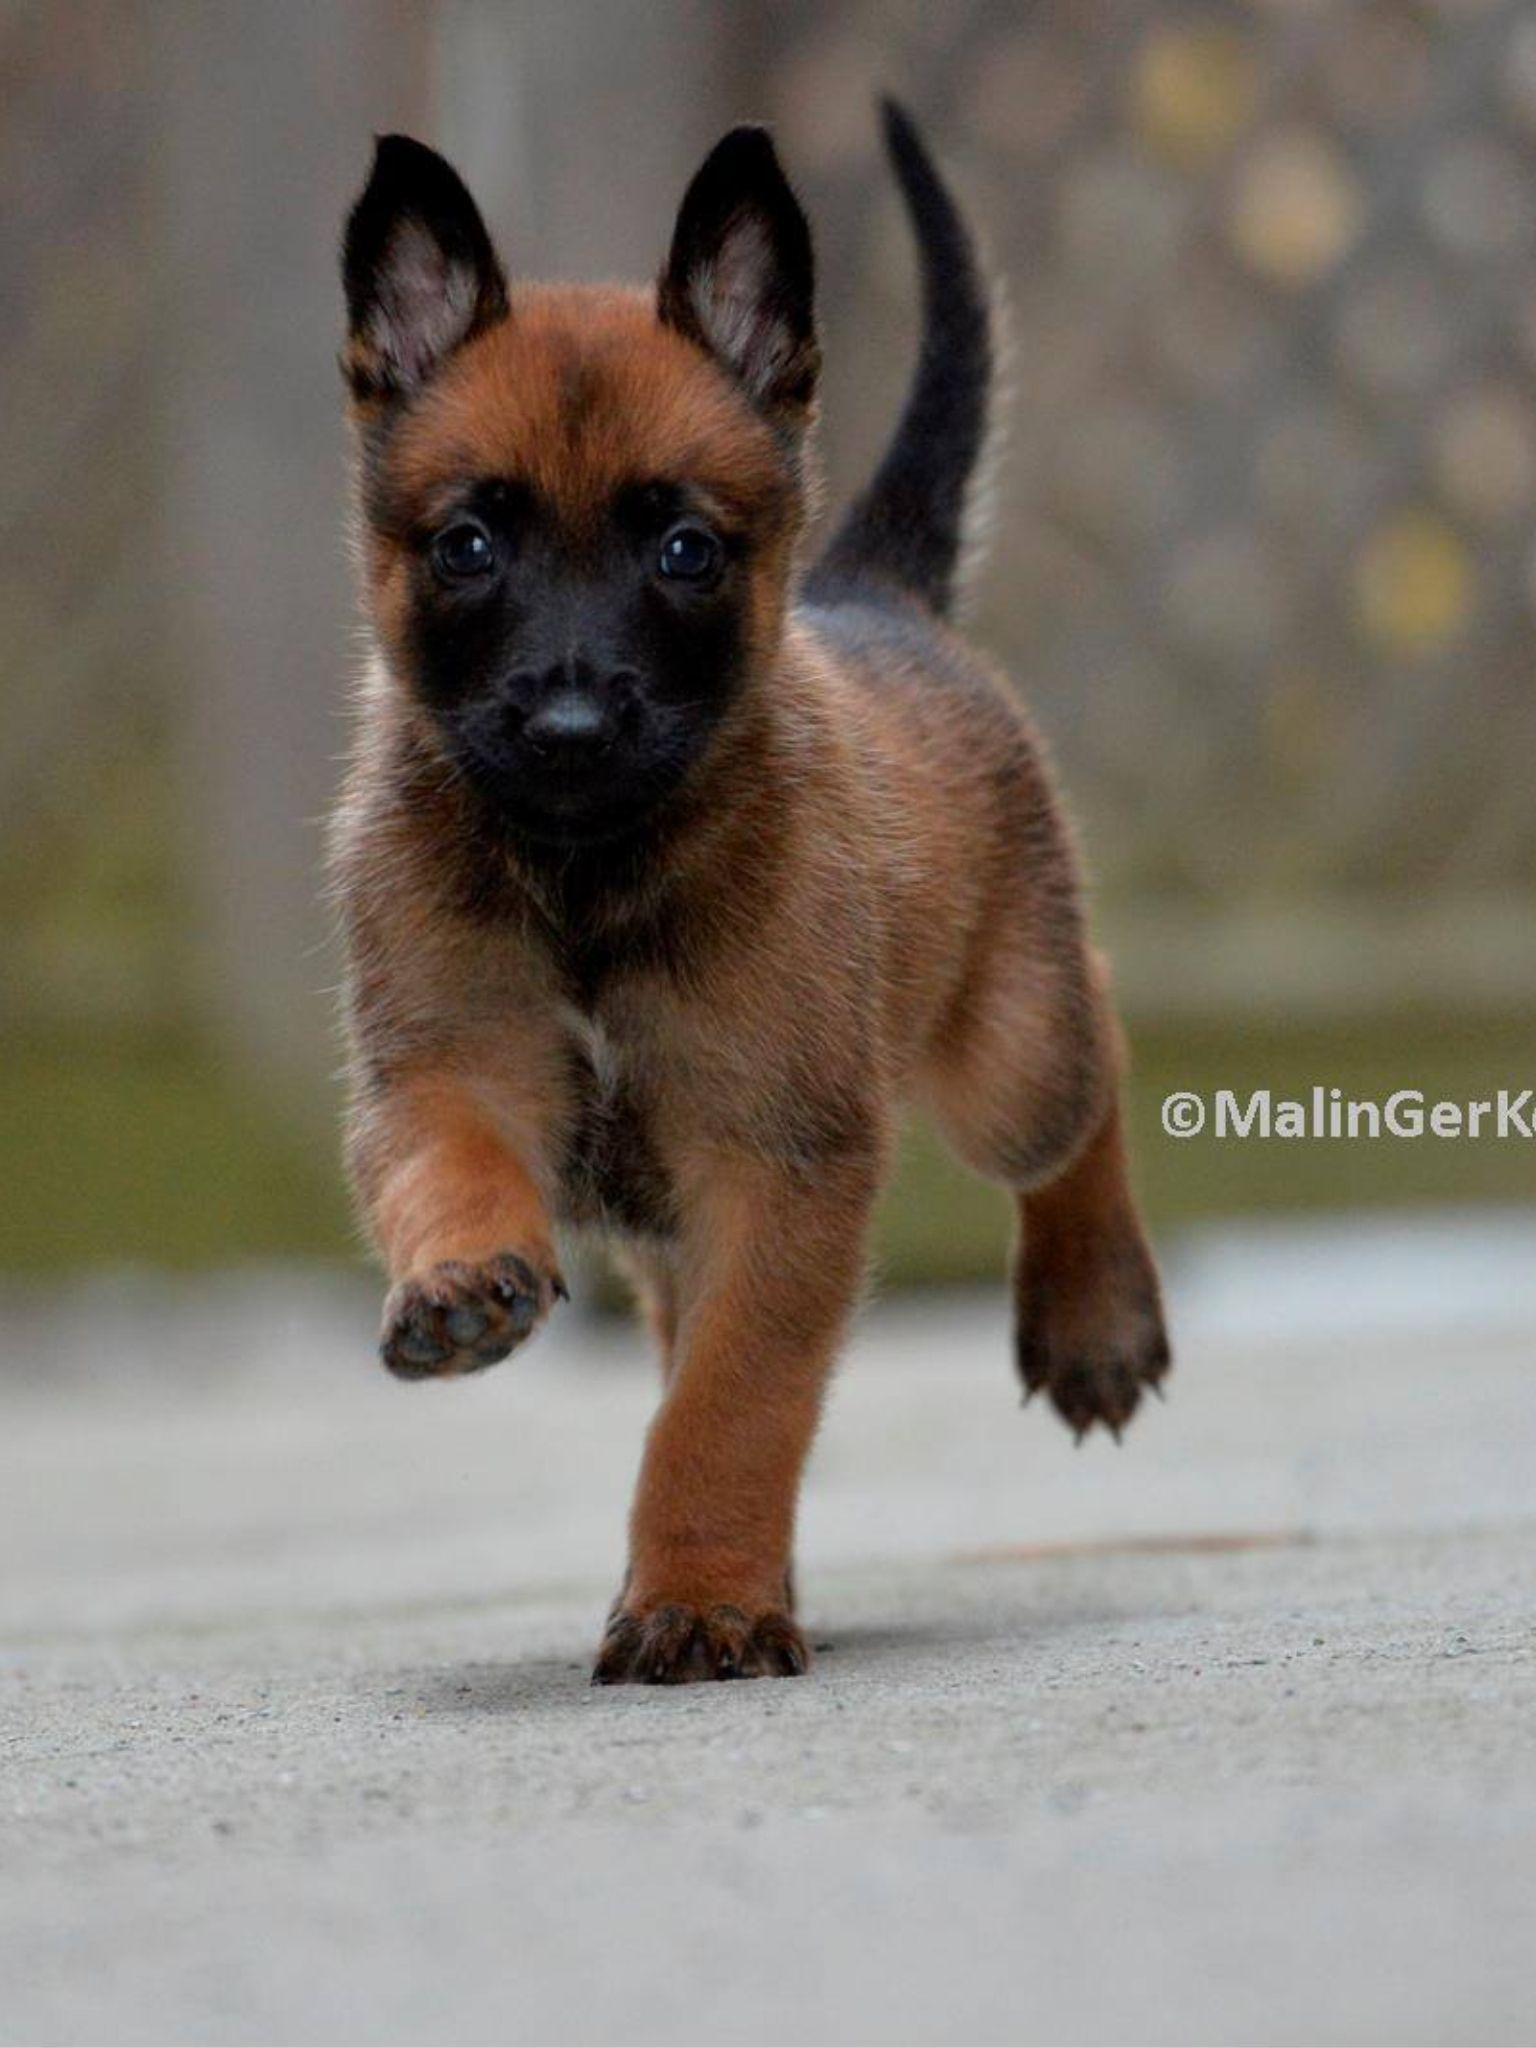 Belgian Malinois Puppy Malinois Dog Malinois Puppies Dogs